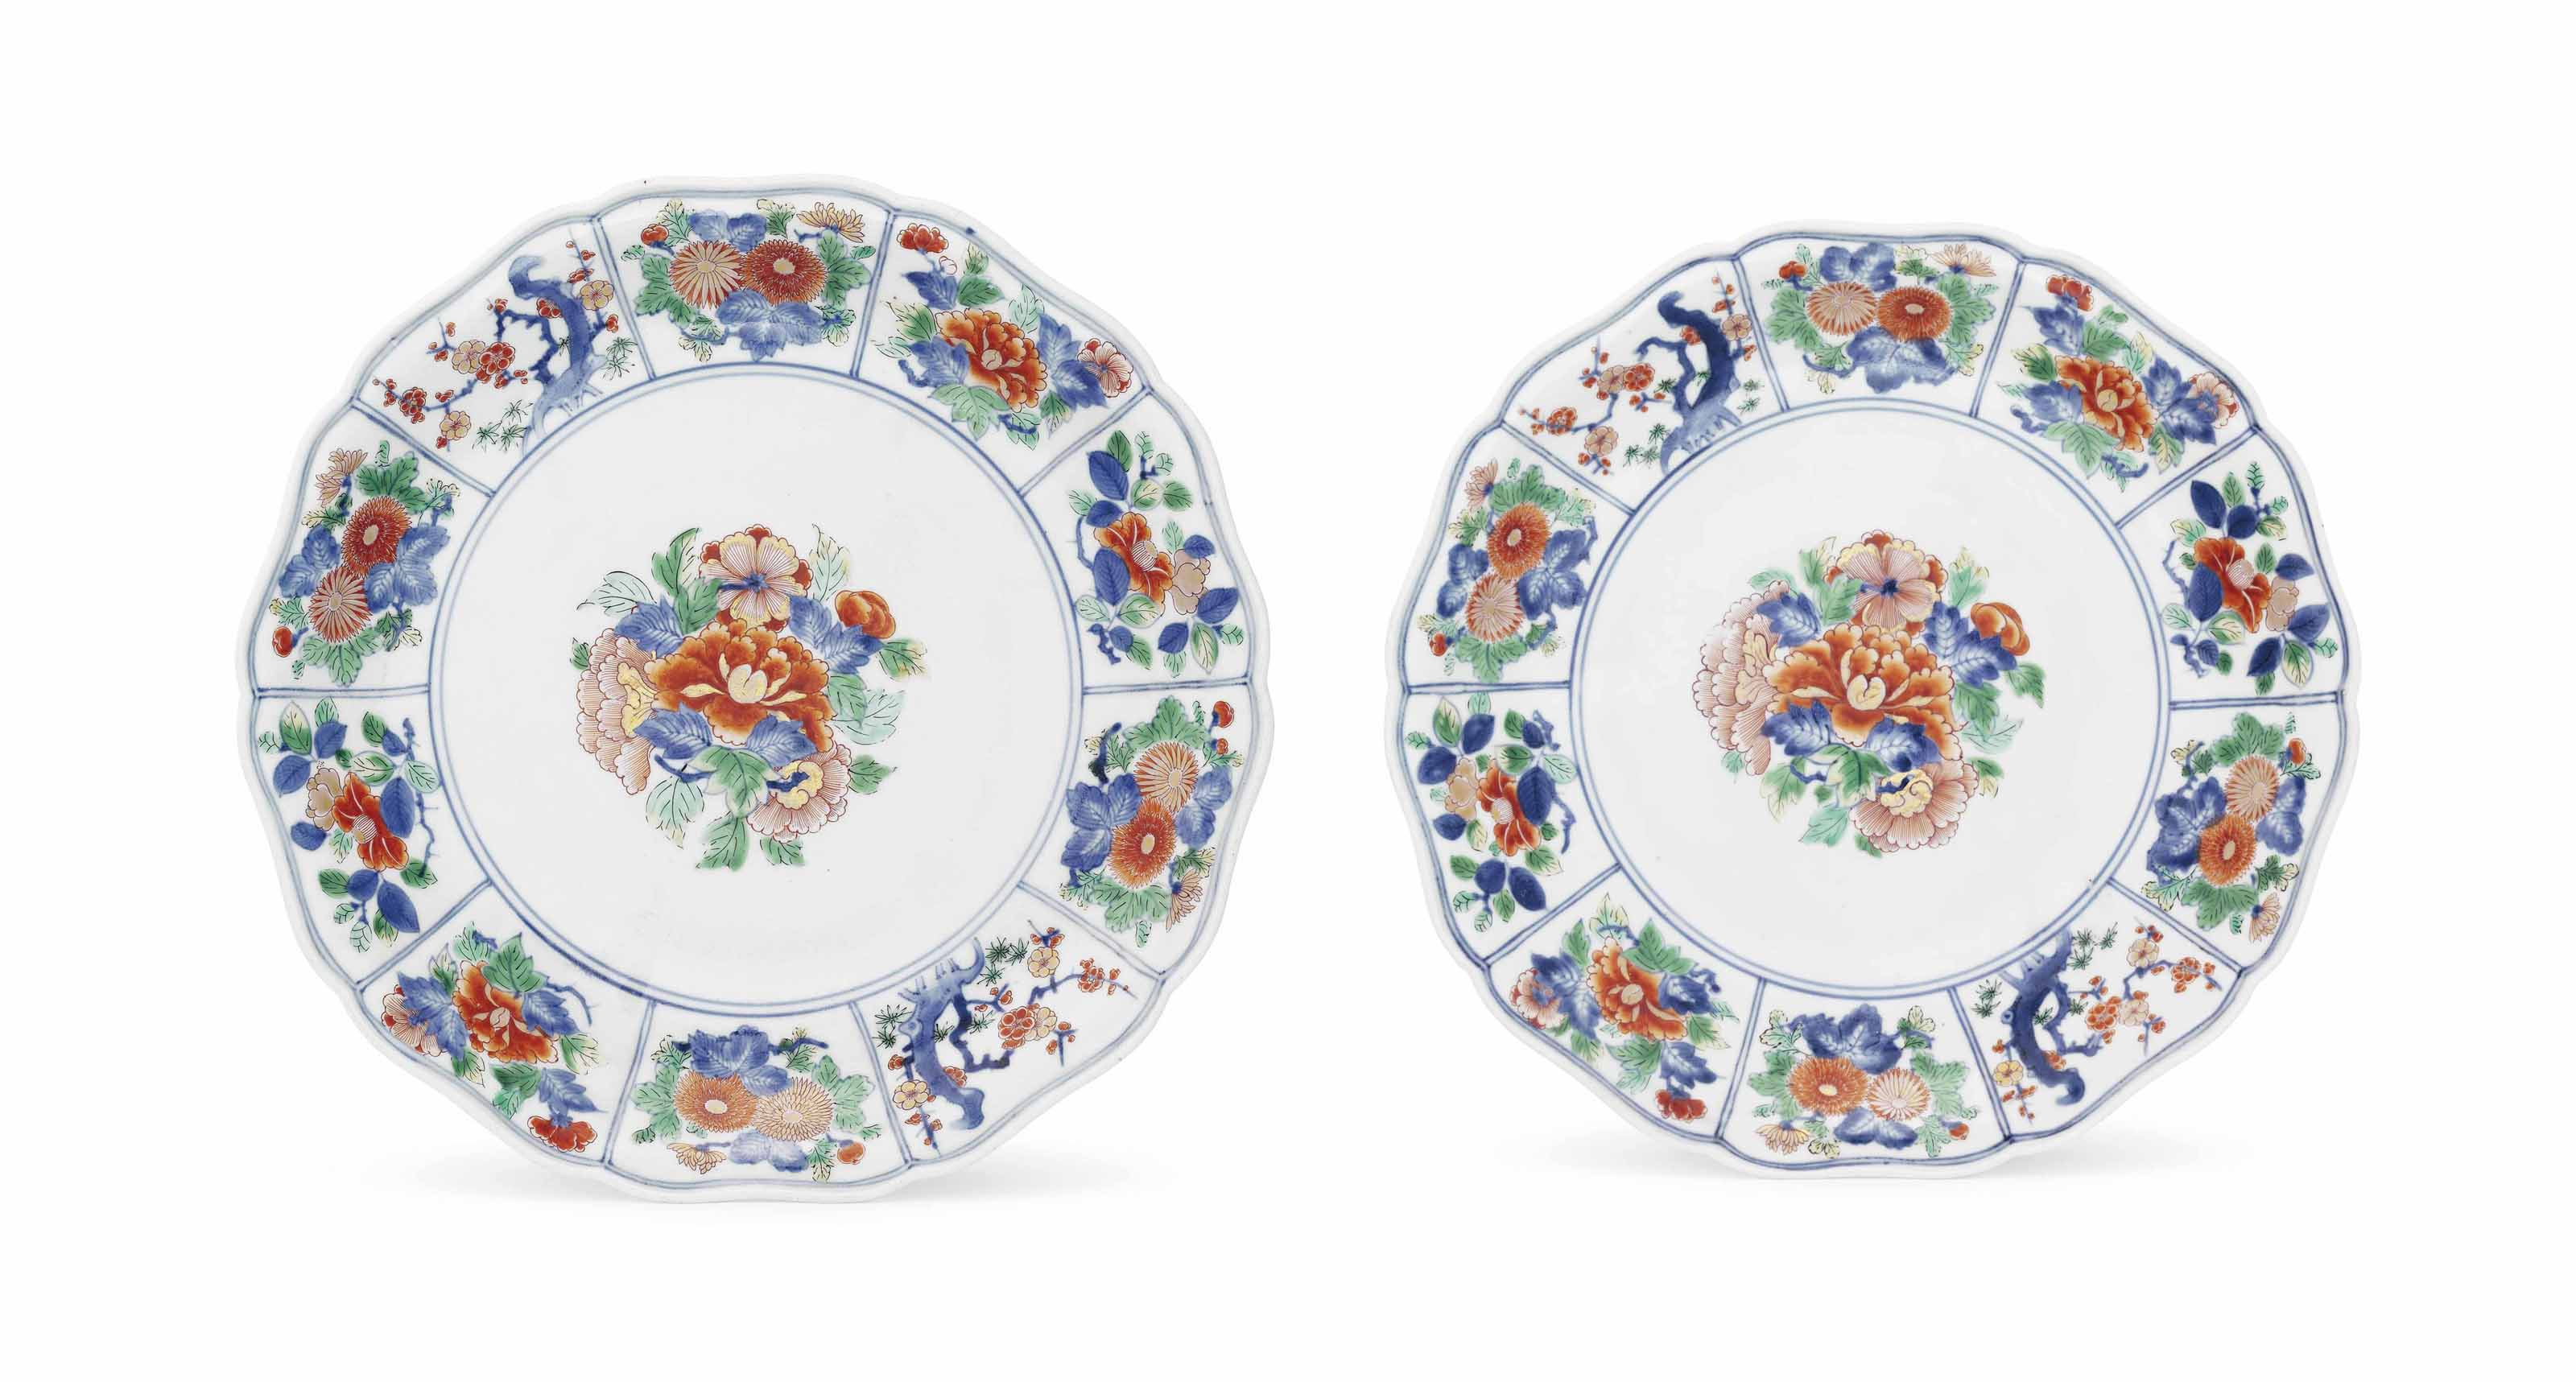 A Rare Pair of Imari Dishes for the Chinese Market